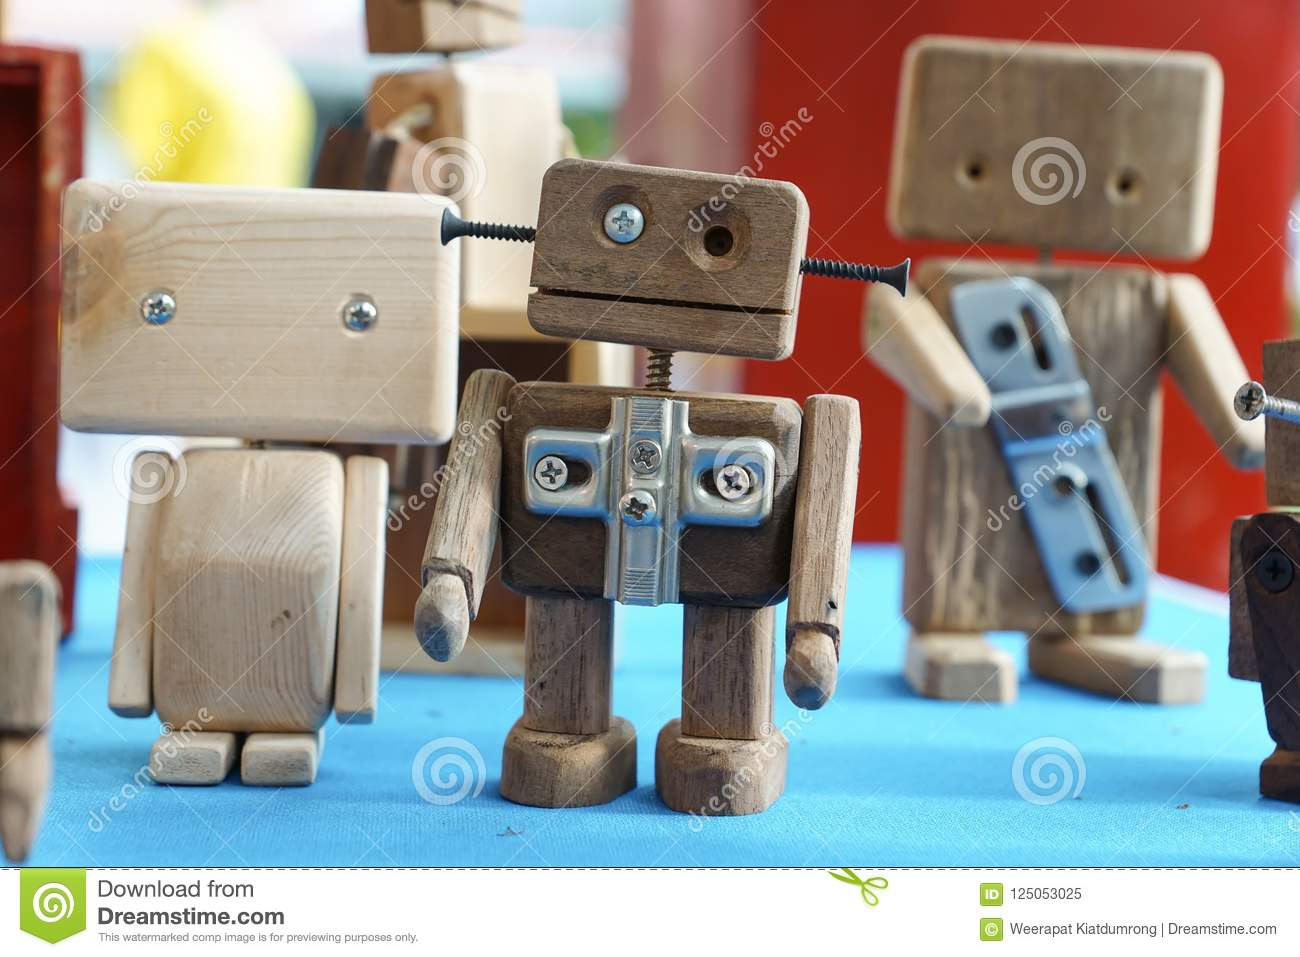 wooden robot toys stock image. image of toys, vintage